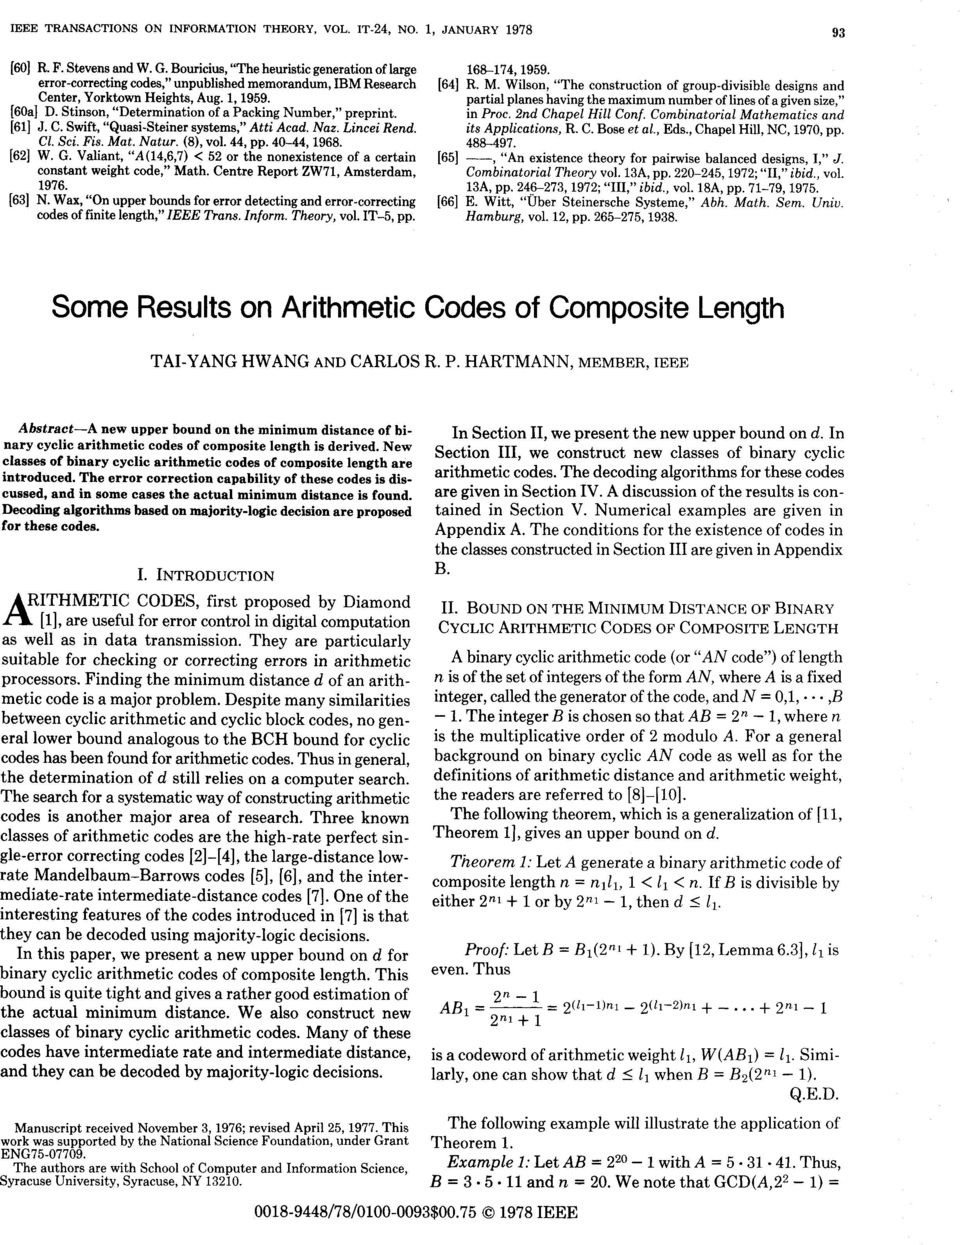 Stinson, Determination of a Packing Number, preprint. [61] J. C. Swift, Quasi-Steiner systems, Atti Acad. Naz. Lincei Rend. CZ. Sci. Fis. Mat. Nutur. (a), vol. 44, pp. 40-44,1968. [62] W. G.